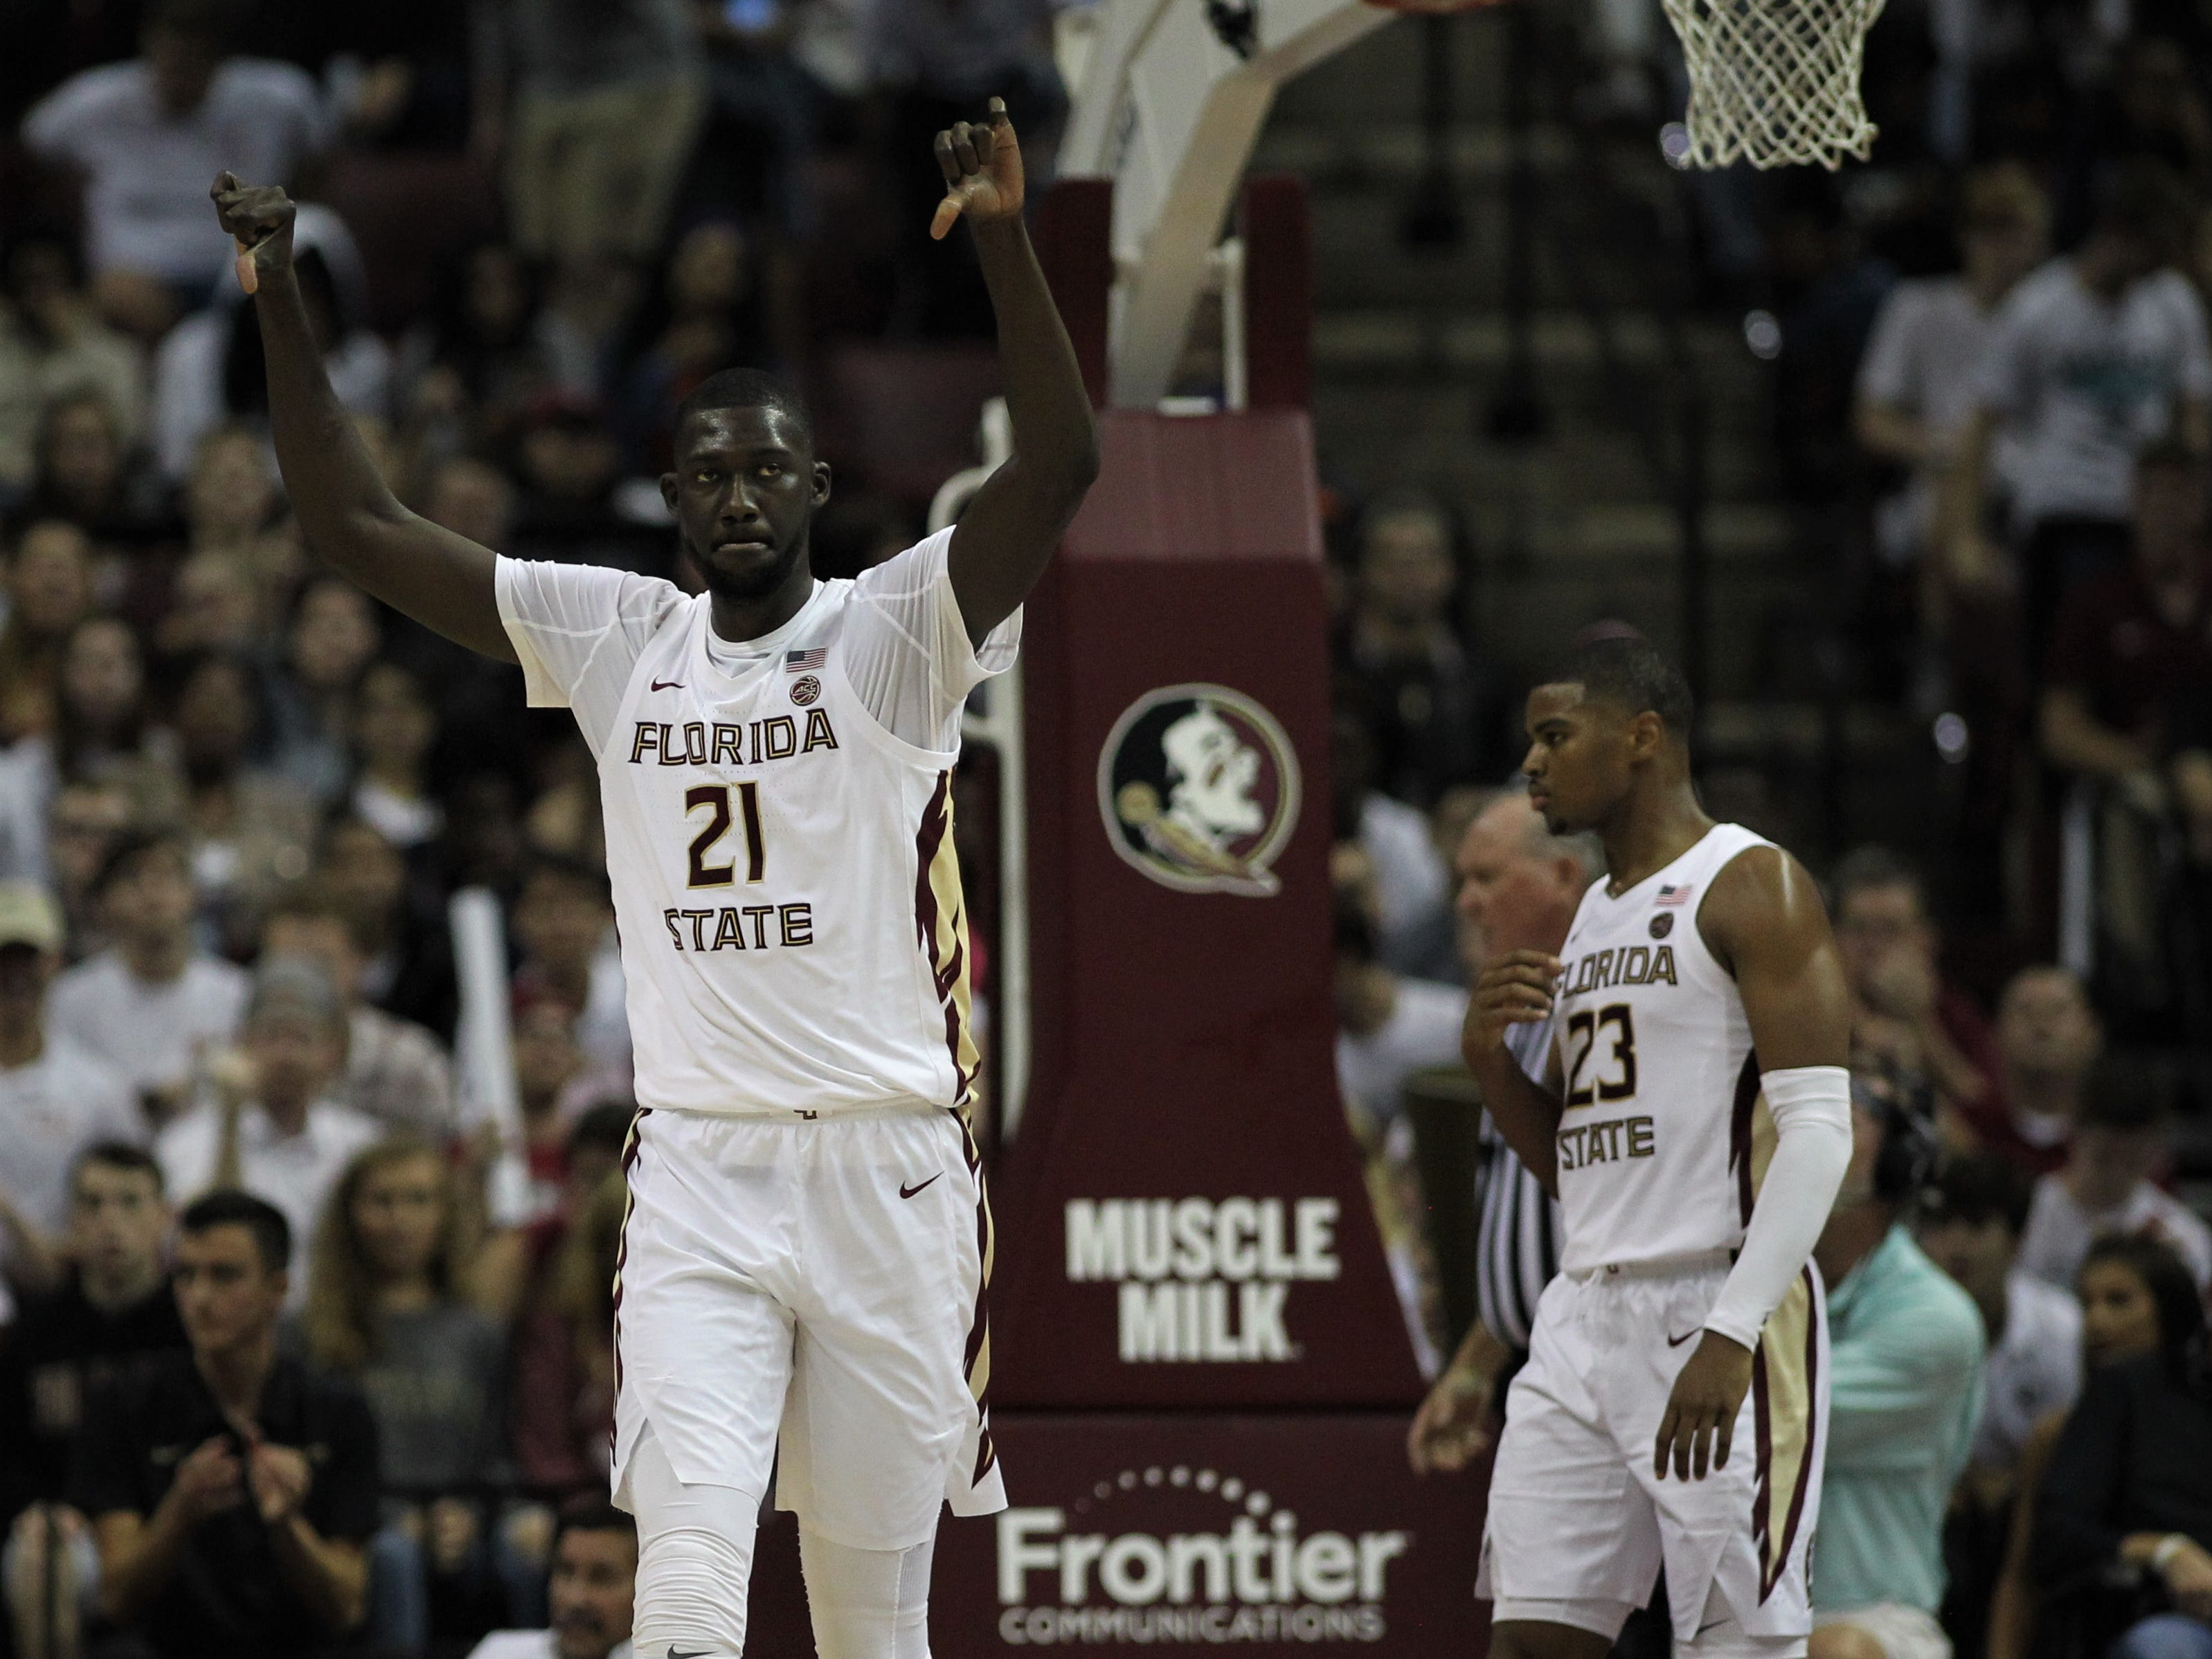 Florida State center Christ Koumadje reacts to blocking a shot during the Sunshine Showdown game against Florida on Tuesday at the Tucker Civic Center.